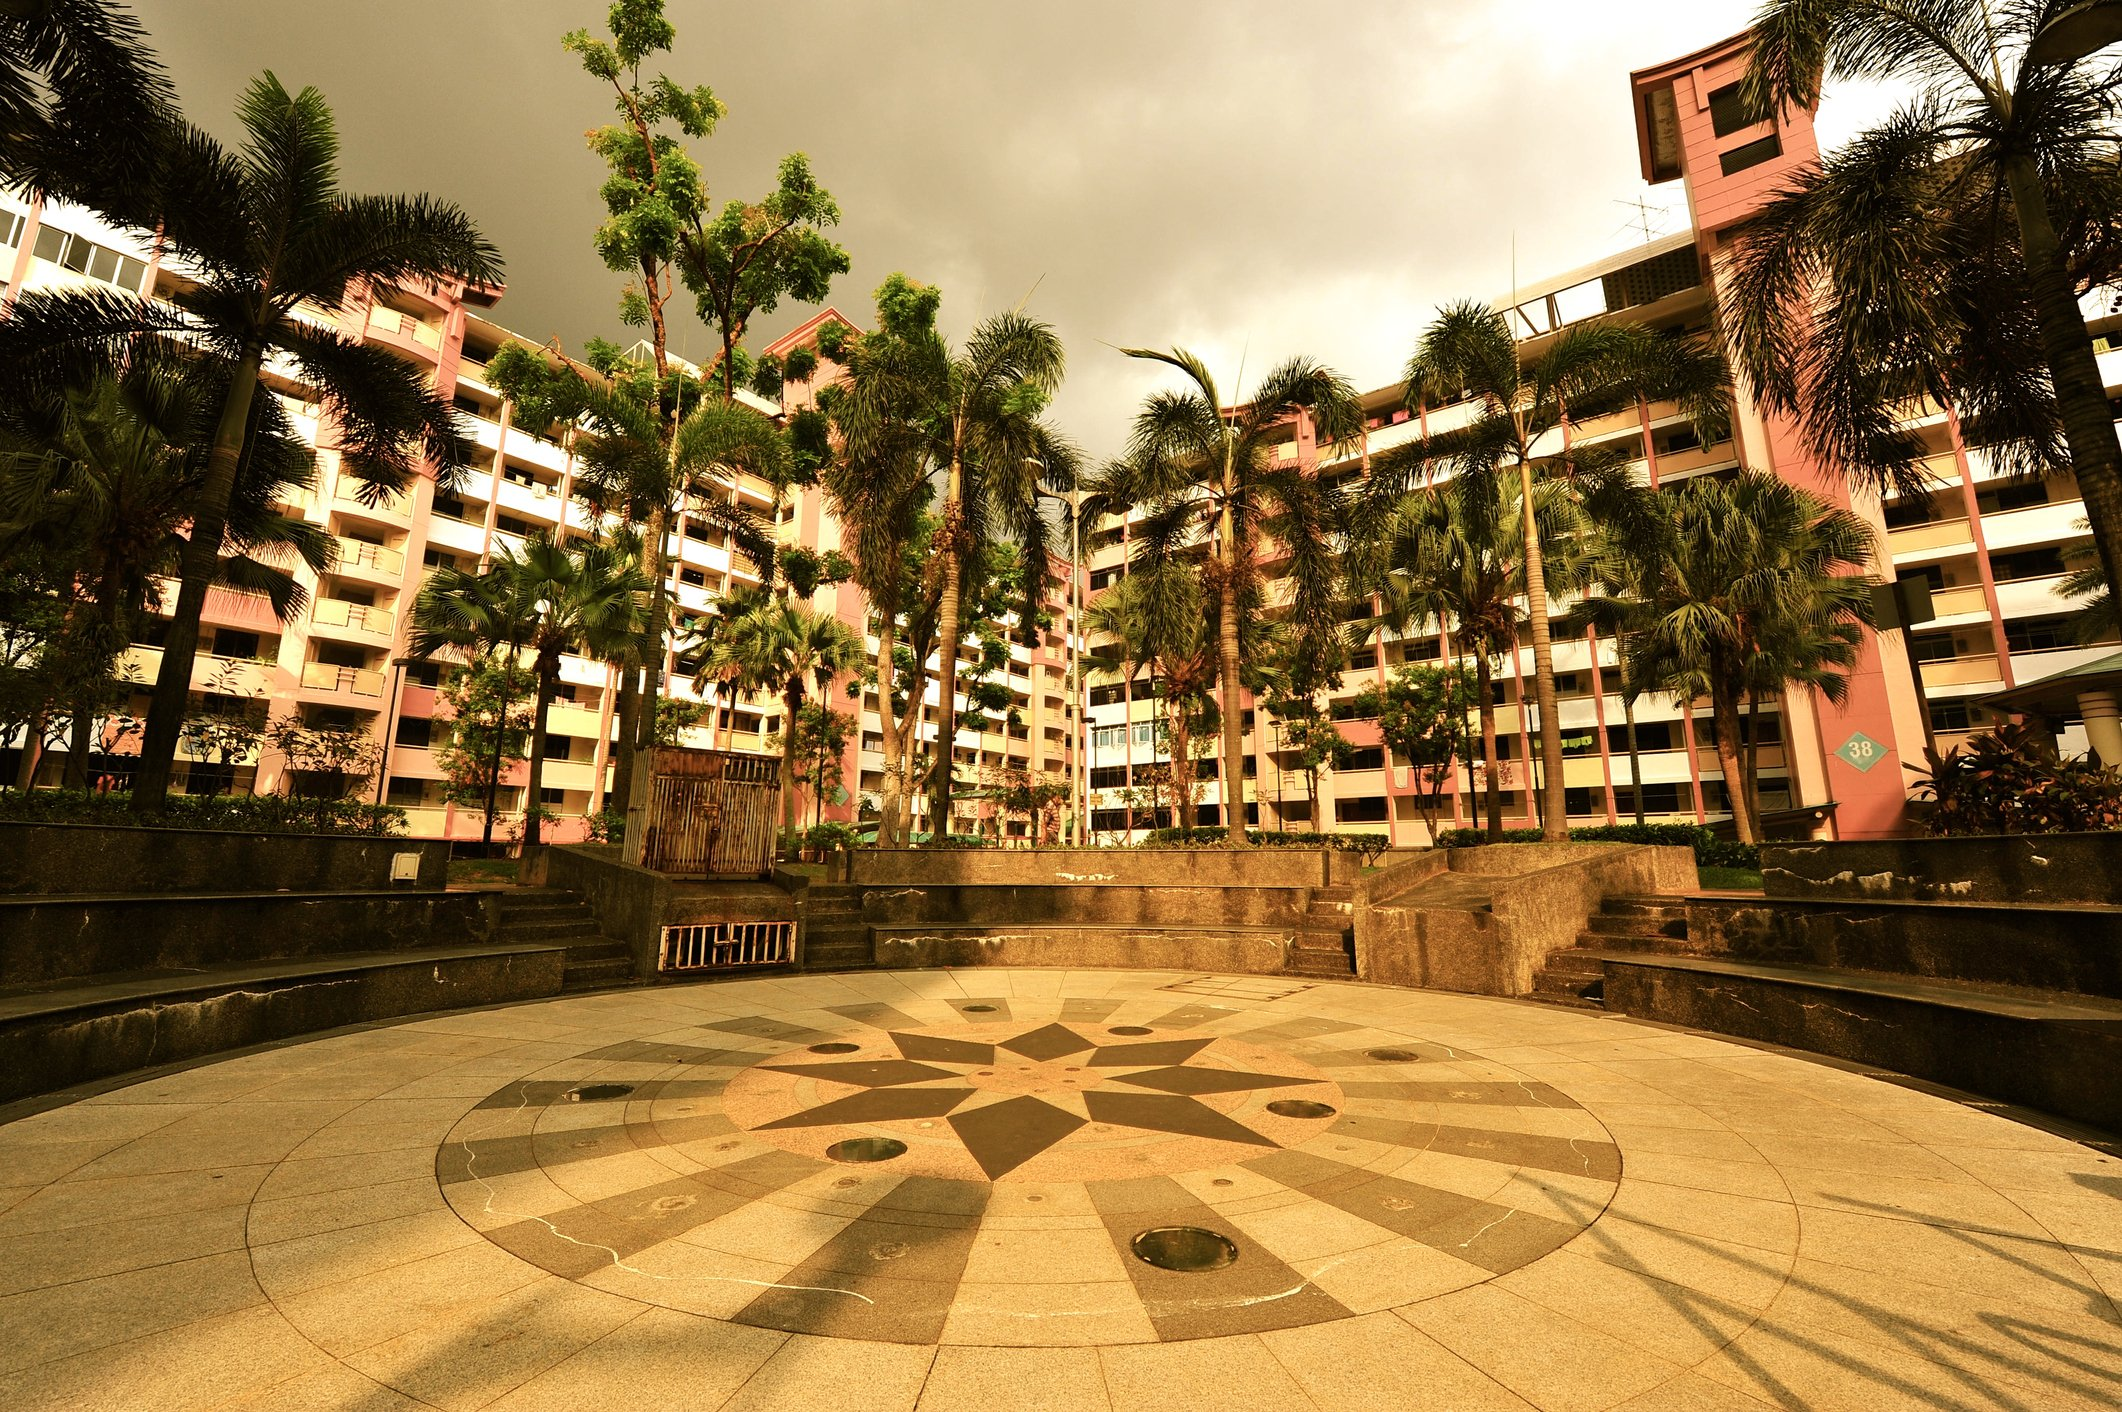 Plaza area between Singapore flats